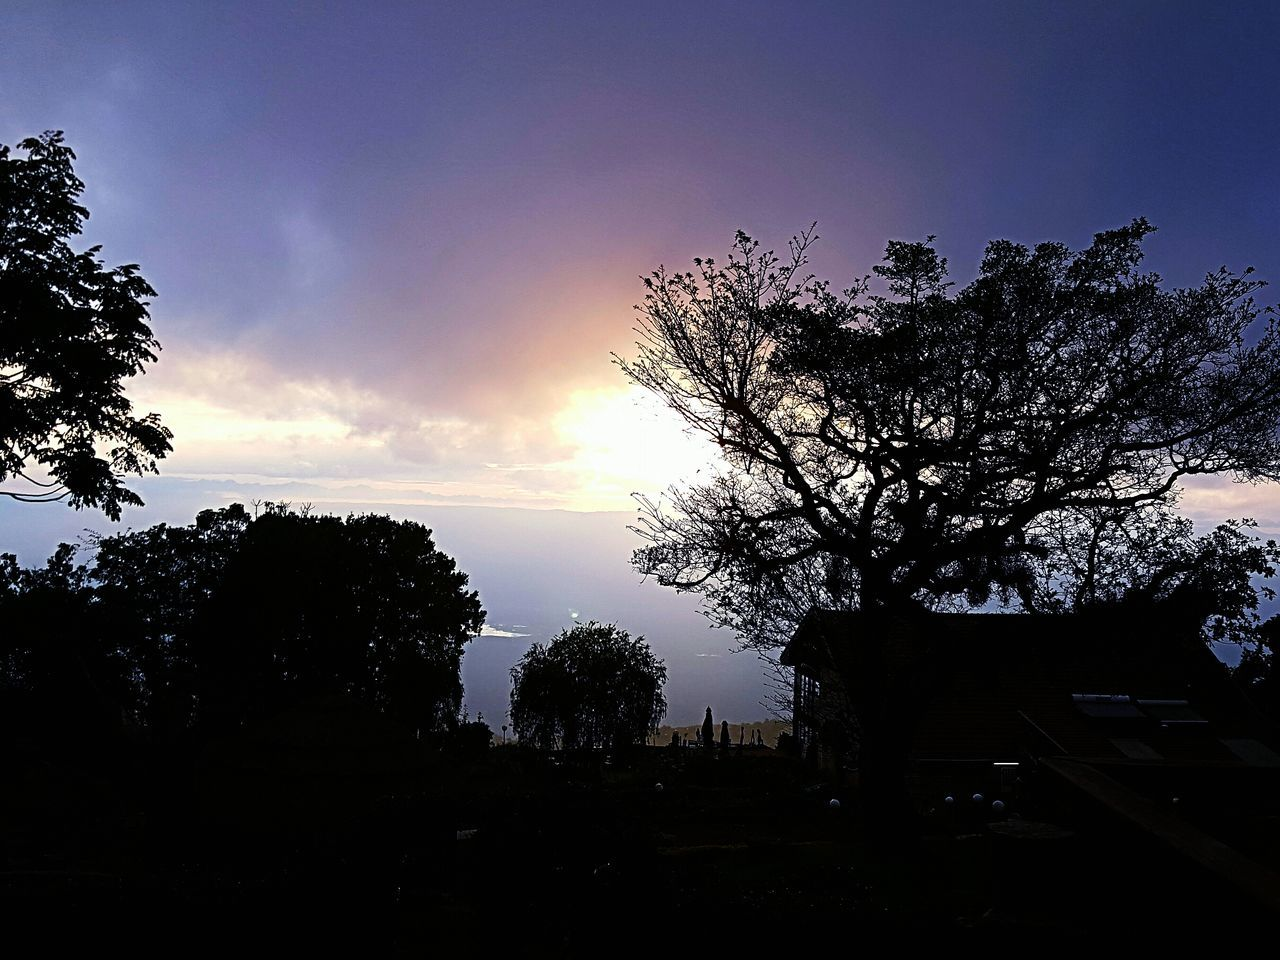 Silhouette Beauty In Nature Nature Outdoors Morning Light Morning Sky Morning Mood Sunrise Morning View Day Morning Sunrise Morning Glow Kerio View Kerio Valley Kerio Kenya Iten, Kenya Iten